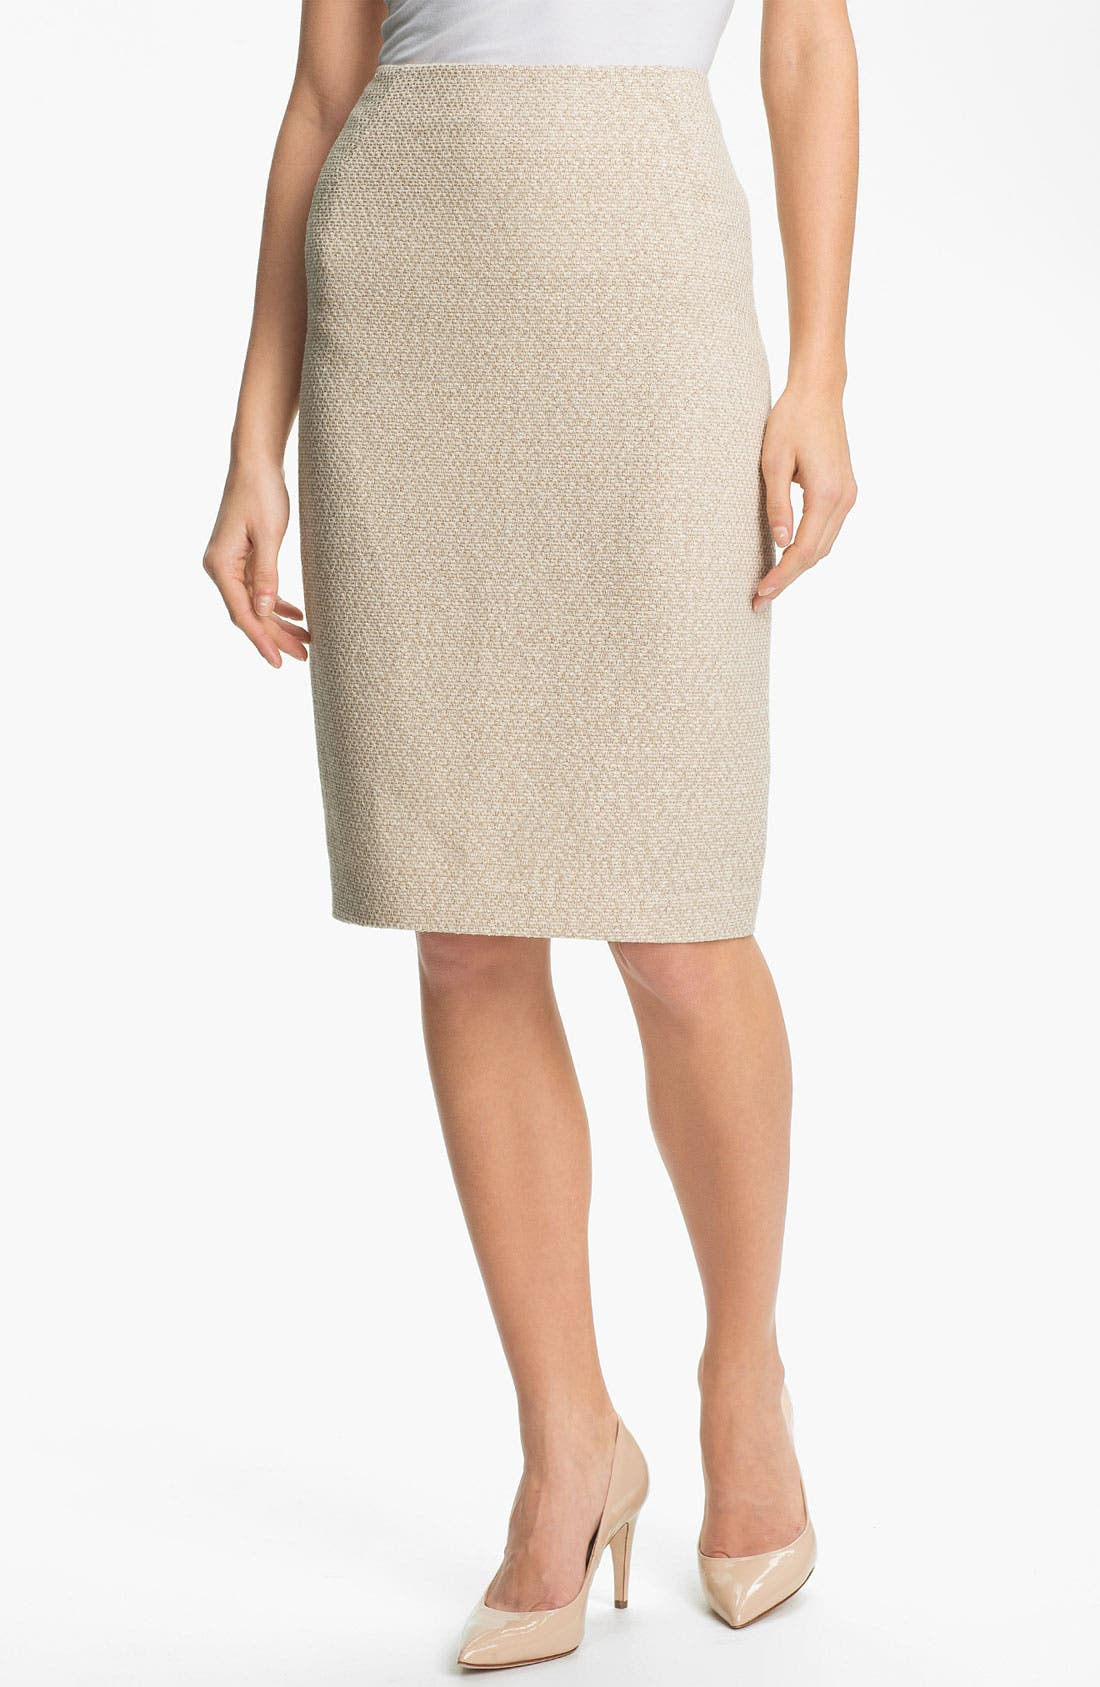 Alternate Image 1 Selected - Lafayette 148 New York 'Arden - Sandalwood' Skirt